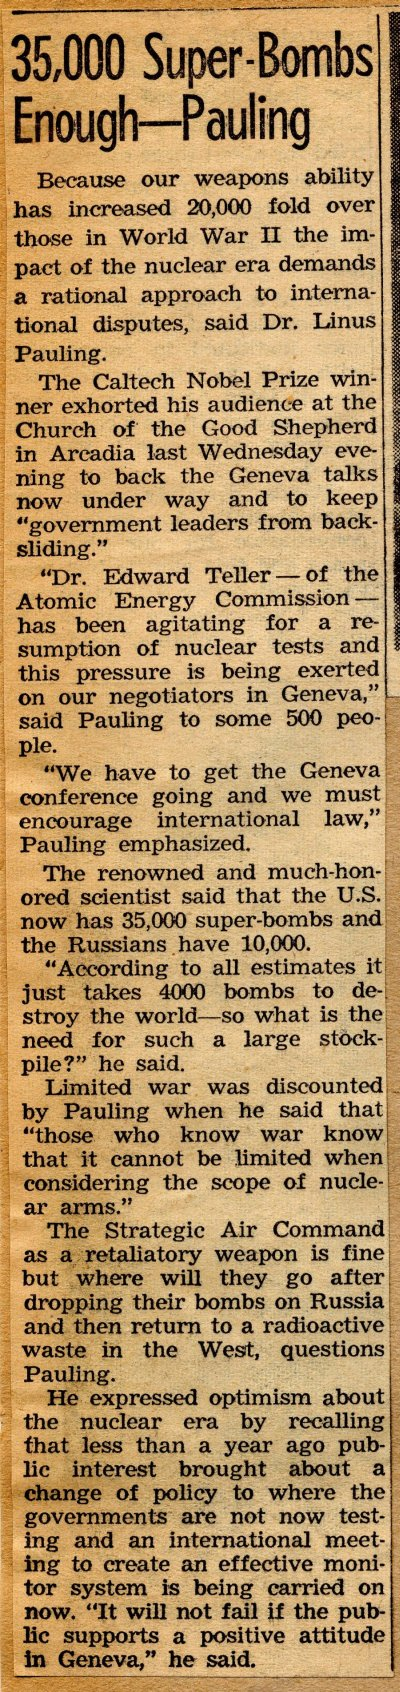 """""""35,000 Super-Bombs Enough -- Pauling.""""Page 1. February 4, 1959"""